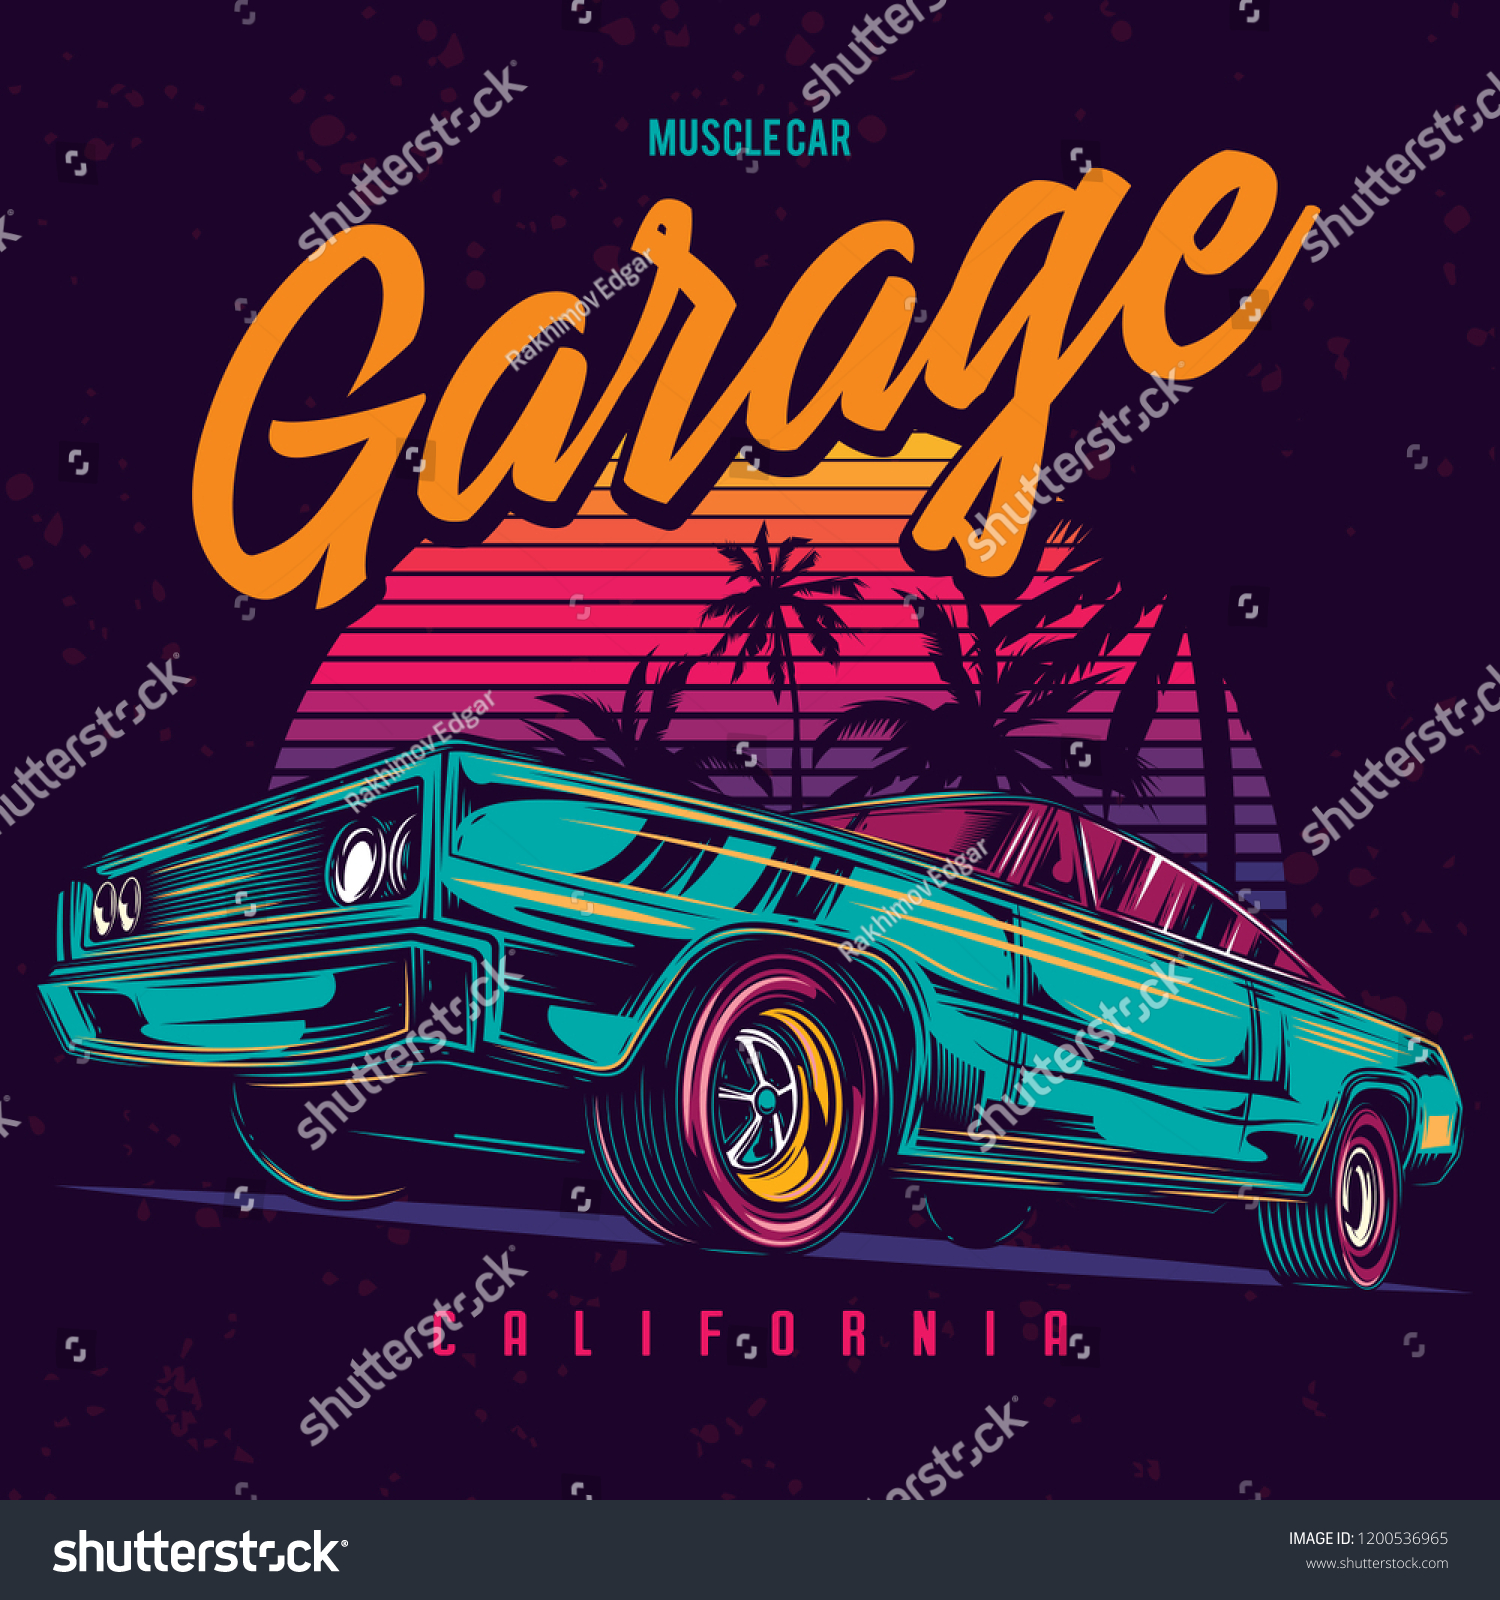 Original vector illustration of an American muscle car in retro neon style.